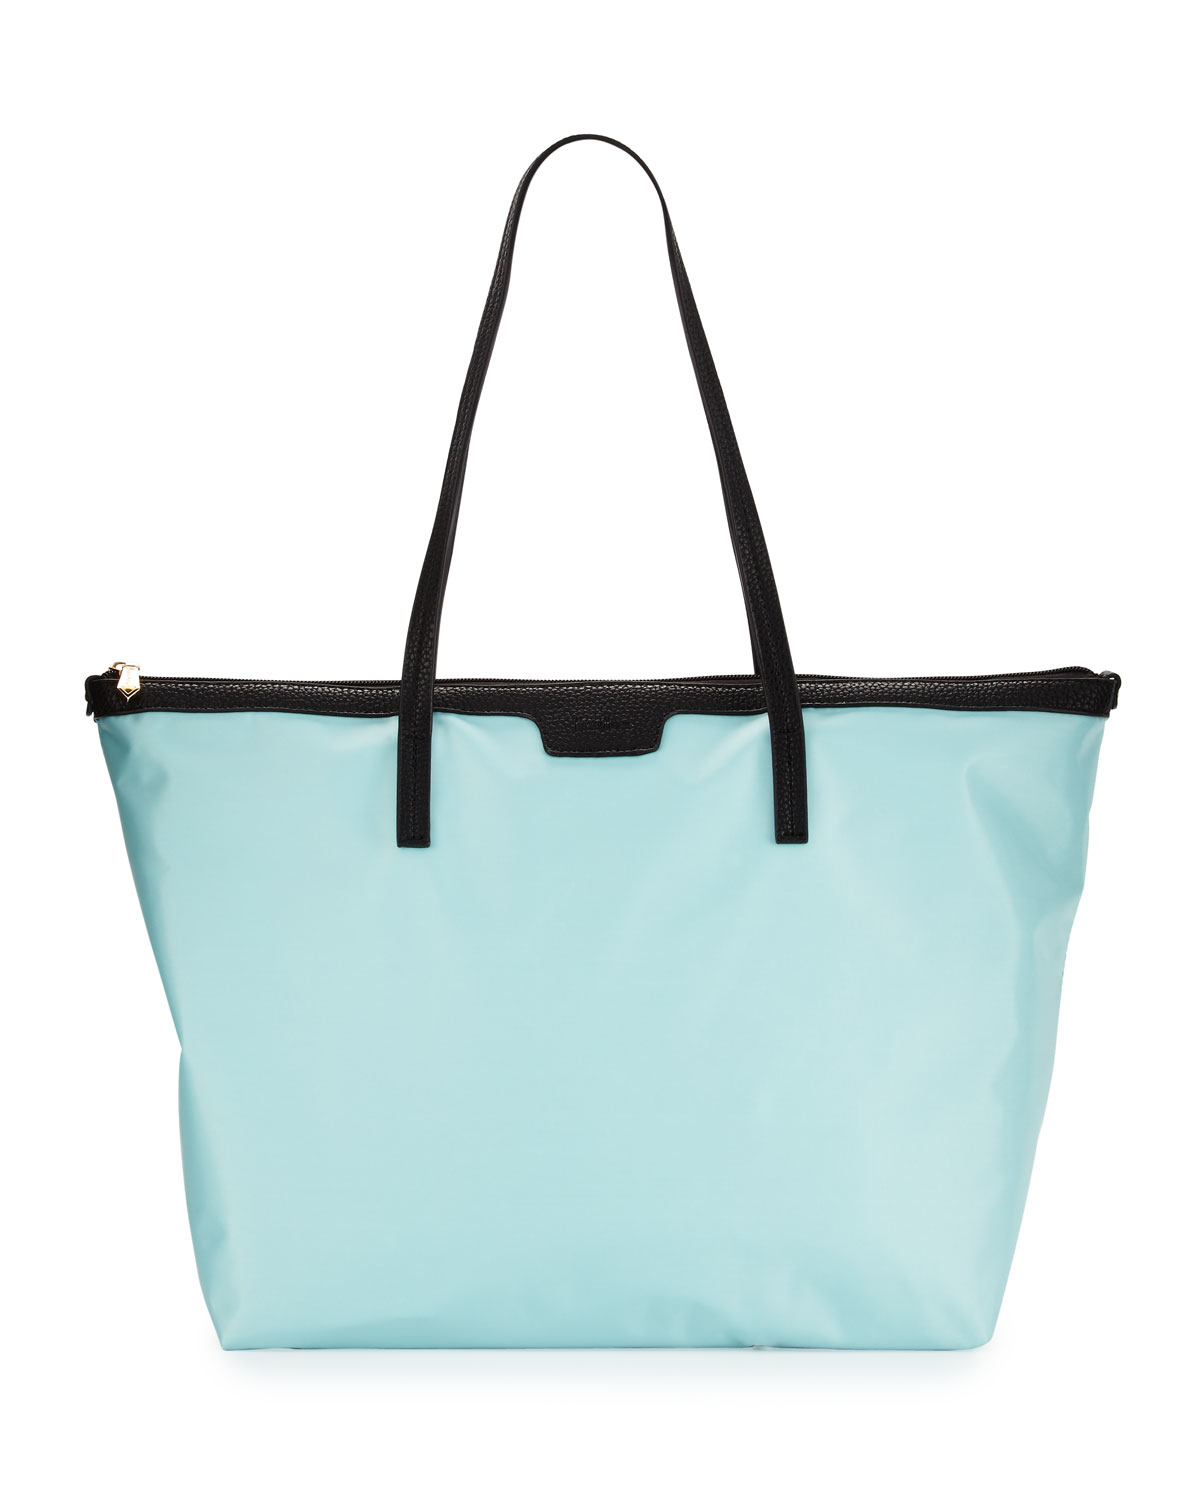 Neiman marcus Miley Nylon Zip-top Tote Bag in Blue | Lyst